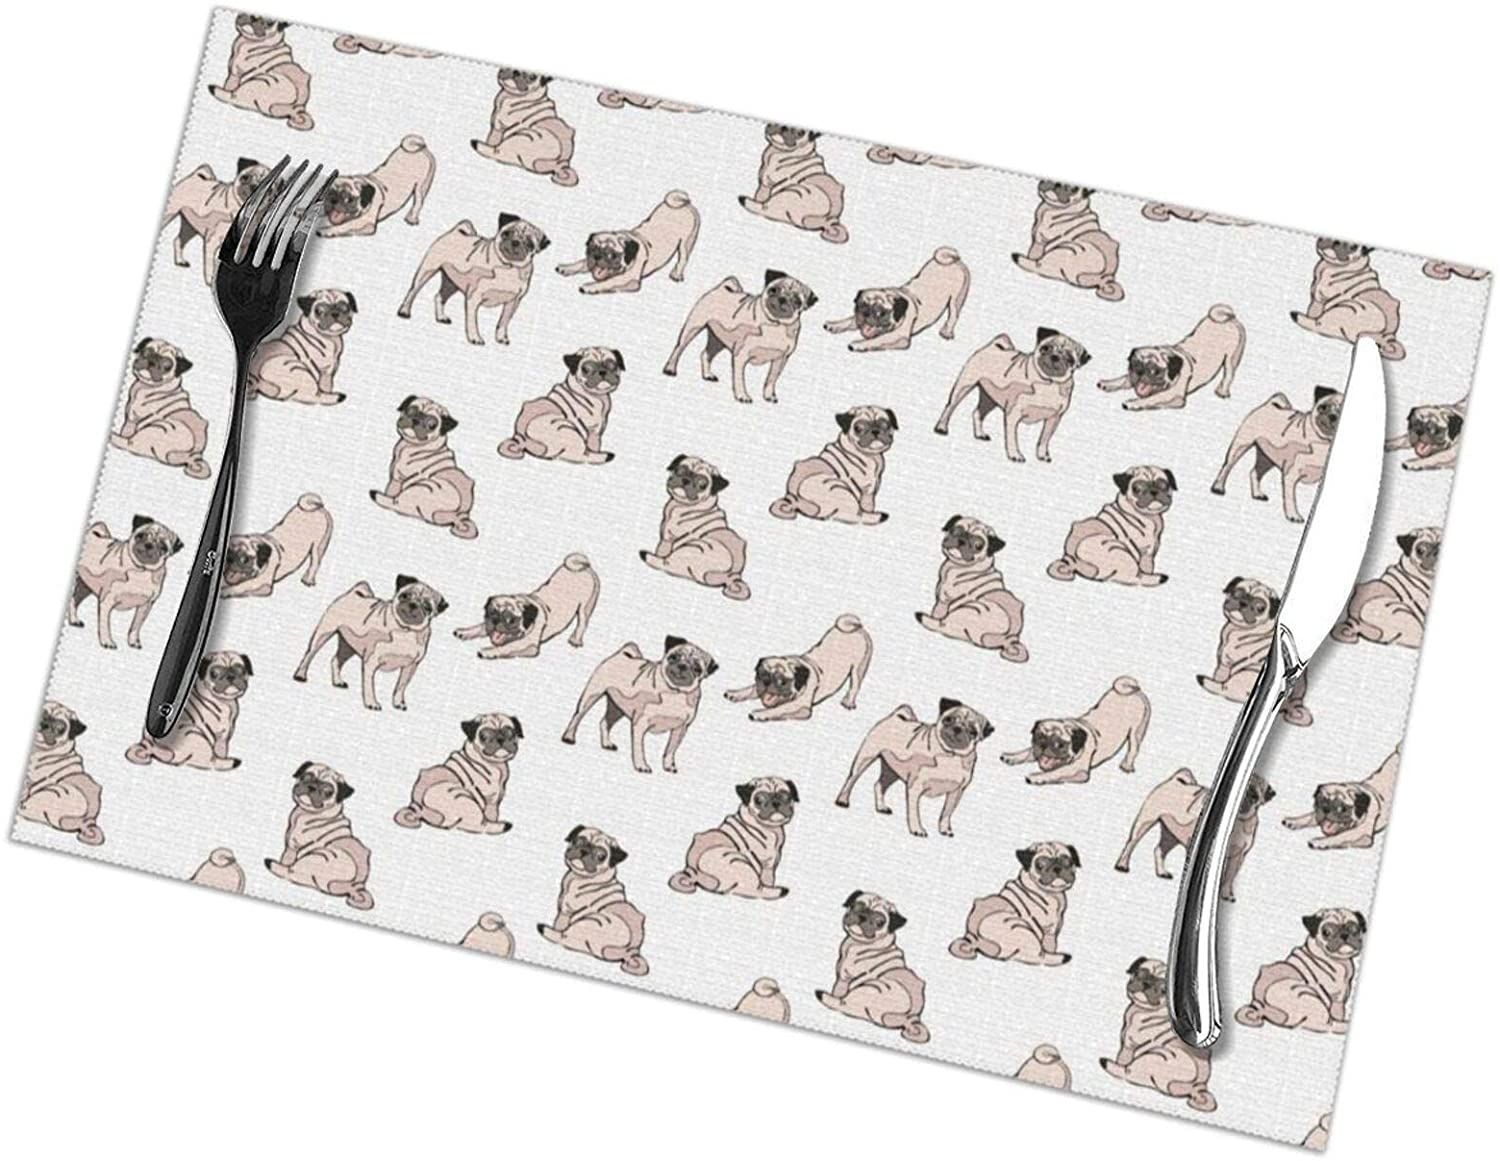 NiYoung PVC Woven Place Mats Set of 6 Table Mats - Durable Heat Resistant Non-Slip Fashion Printing Table Mats - Decorate Placemat for All Occasions (Cute Dogs Pug Pattern Pattern)